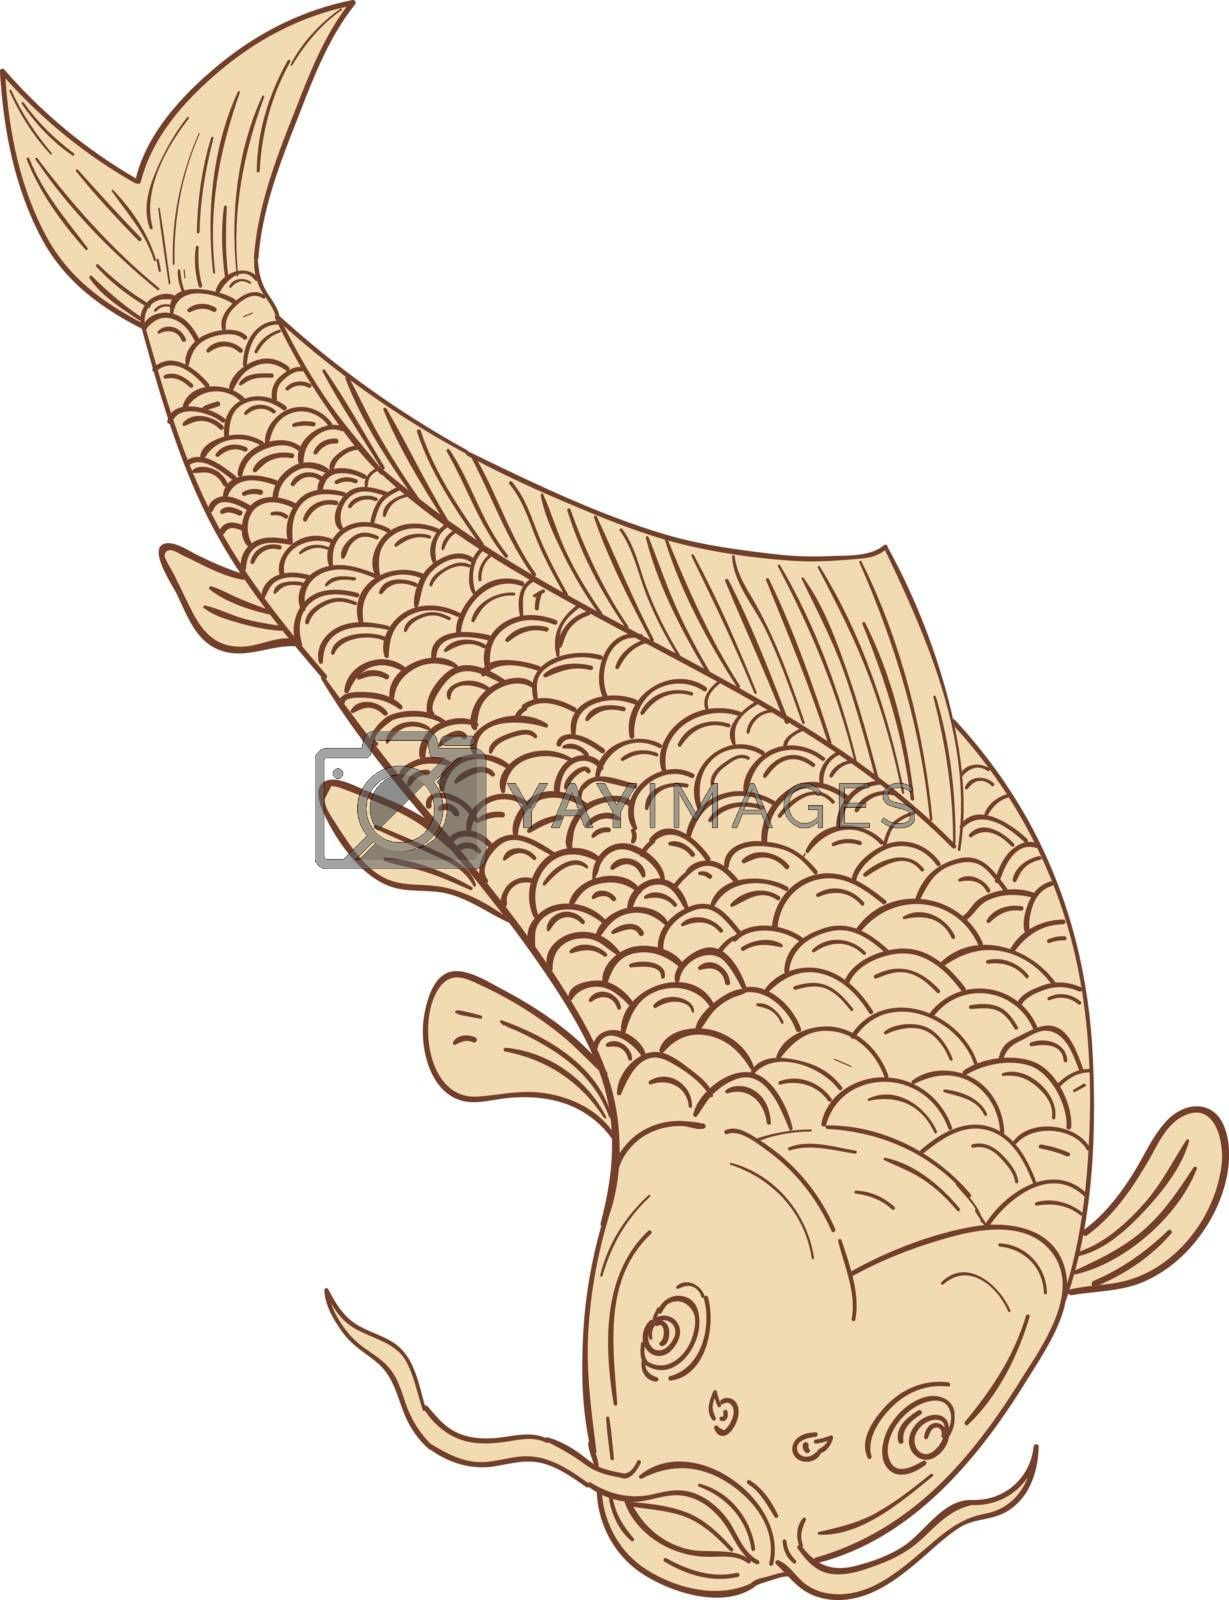 Drawing sketch style illustration of a trout fish diving down viewed from the front set on isolated white background.